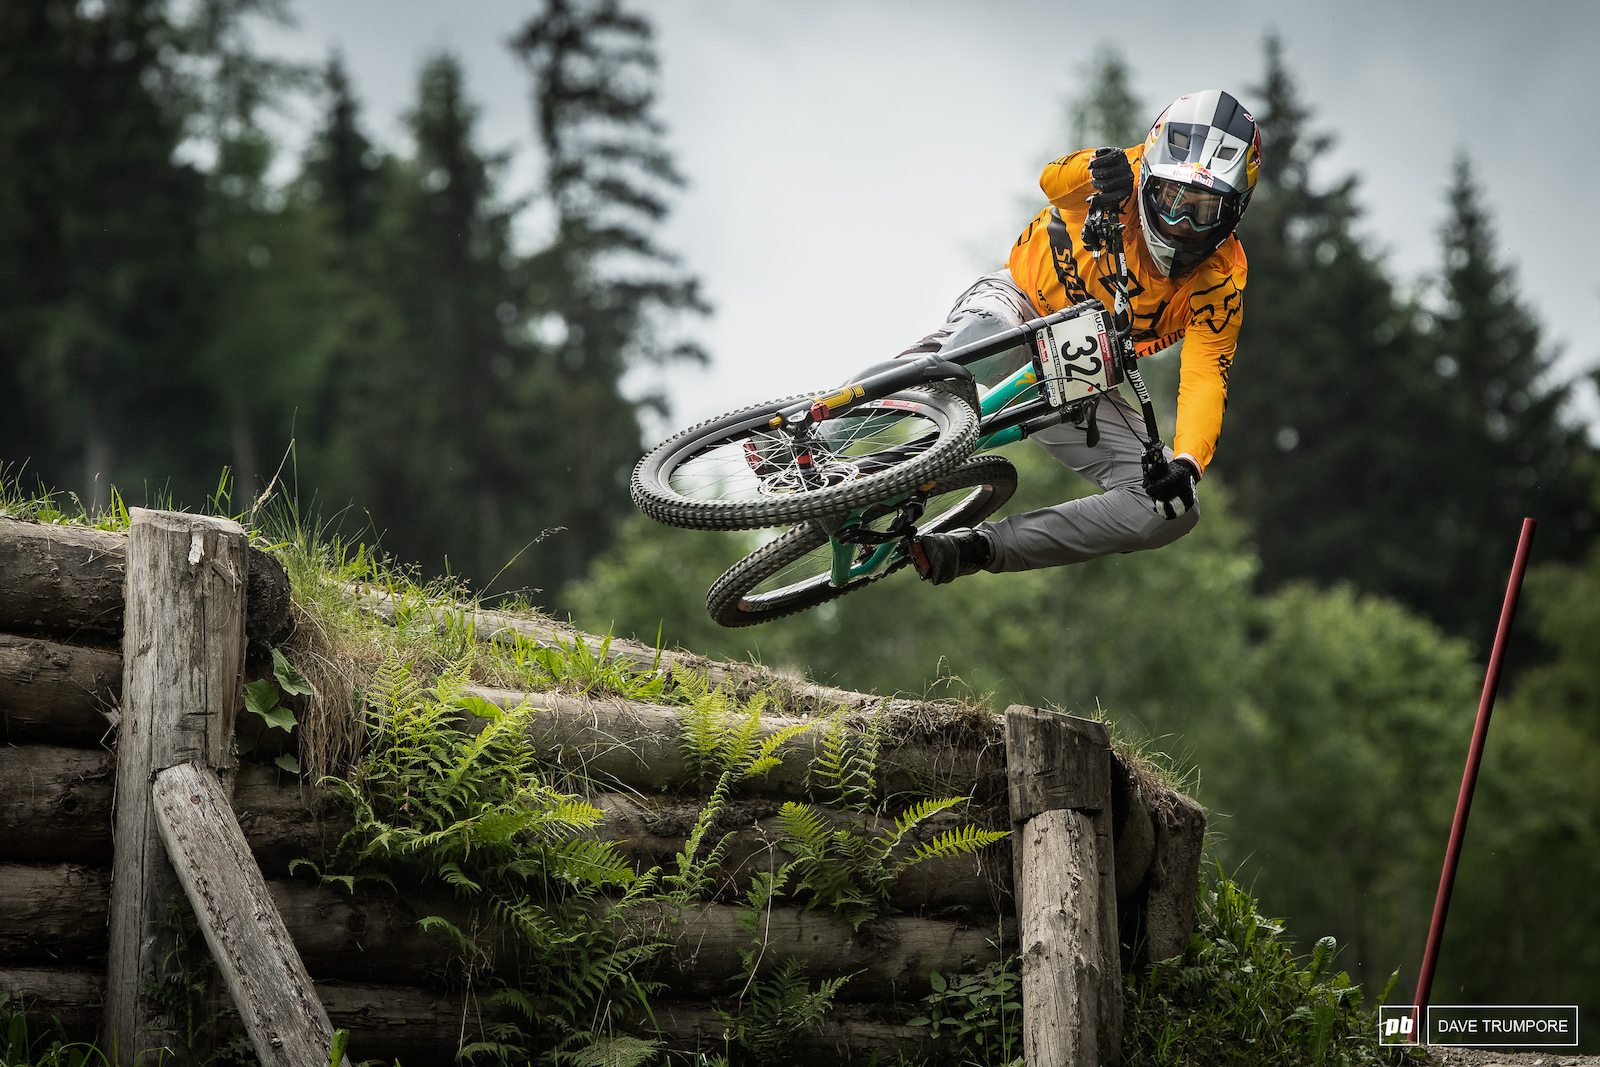 Sometimes it s hard to wrap your head around the fact that Finn Iles is still only 18 years old. So much speed and so much style seems to be the name of the game for today s youth.